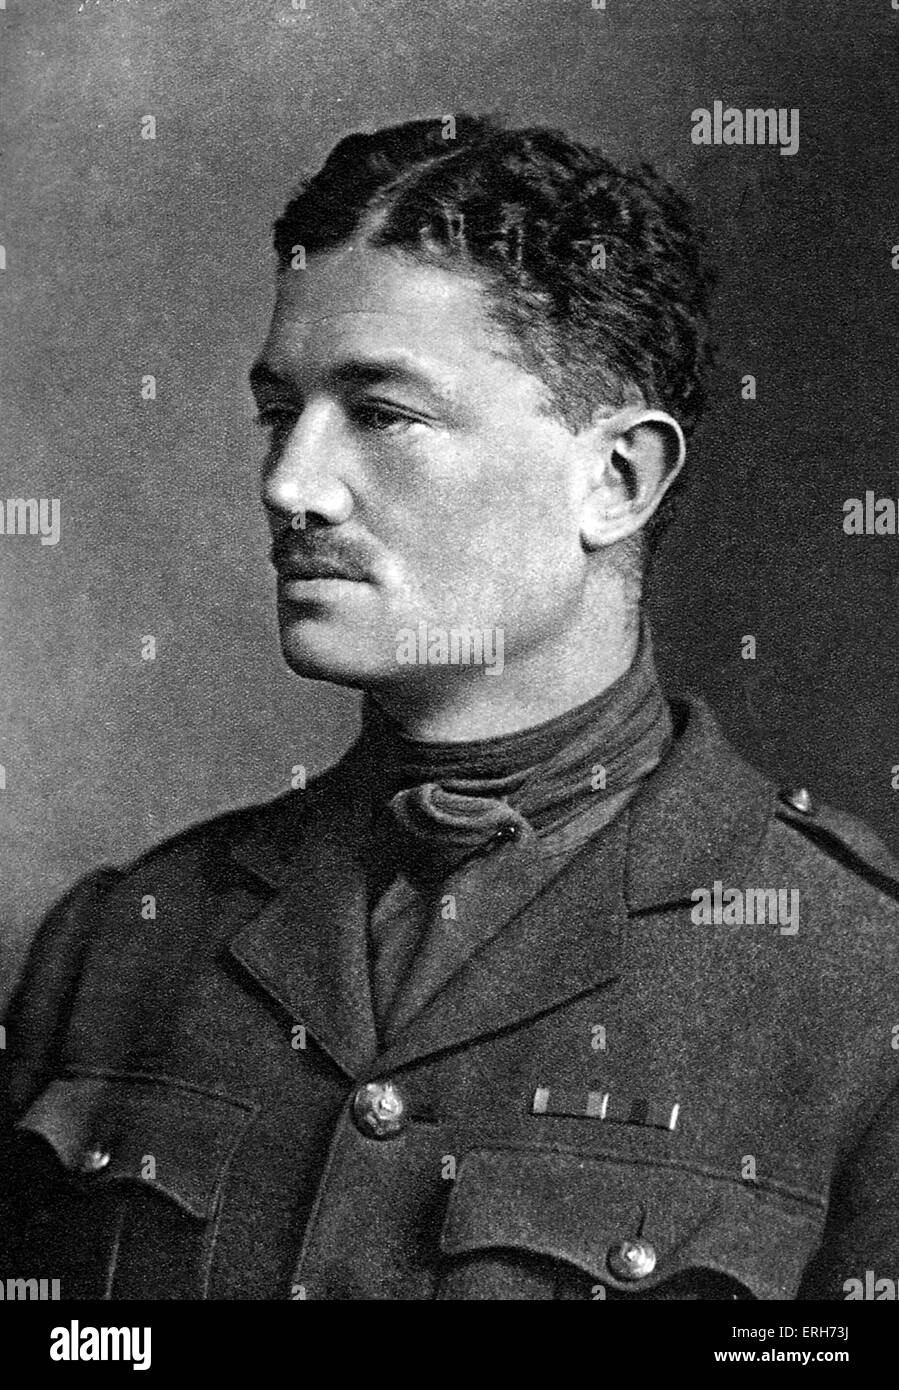 Julian Grenfell - portrait. British soldier (Captain of Royal Dragoons) and poet of World War I. Son of William - Stock Image